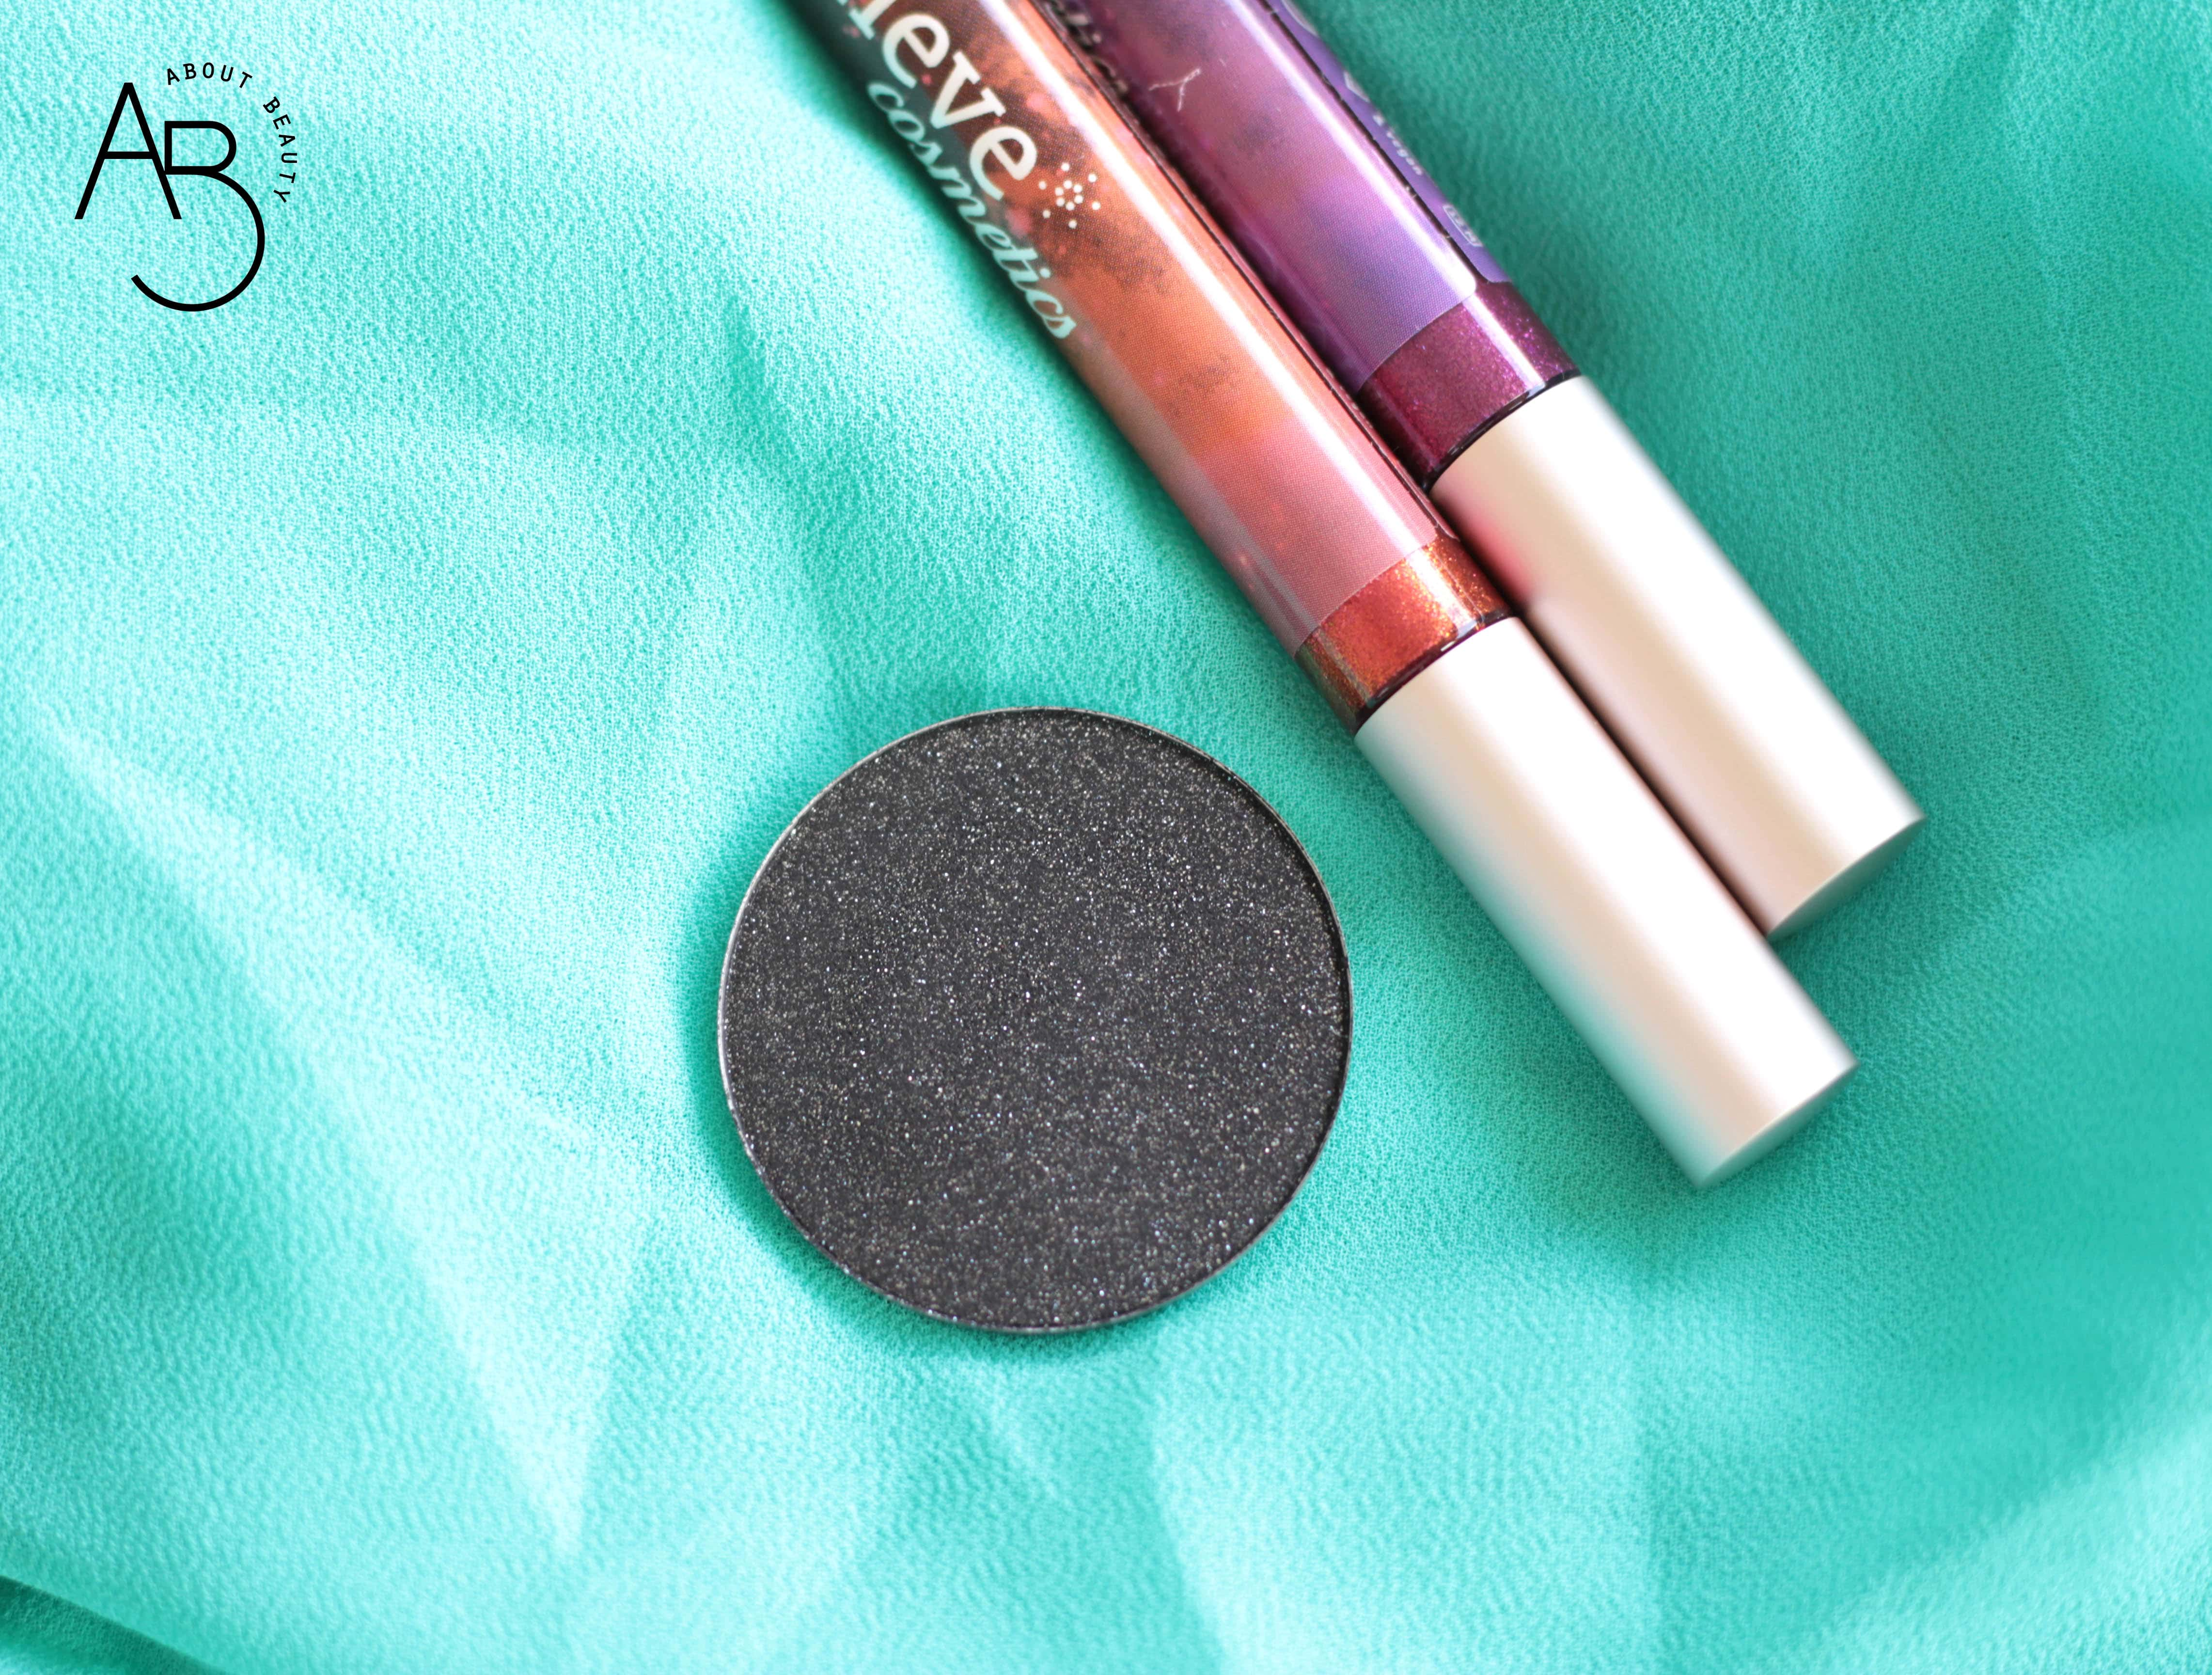 Neve Cosmetics Sparkling '67 - Info review recensione prezzo sconto swatch - Another planet